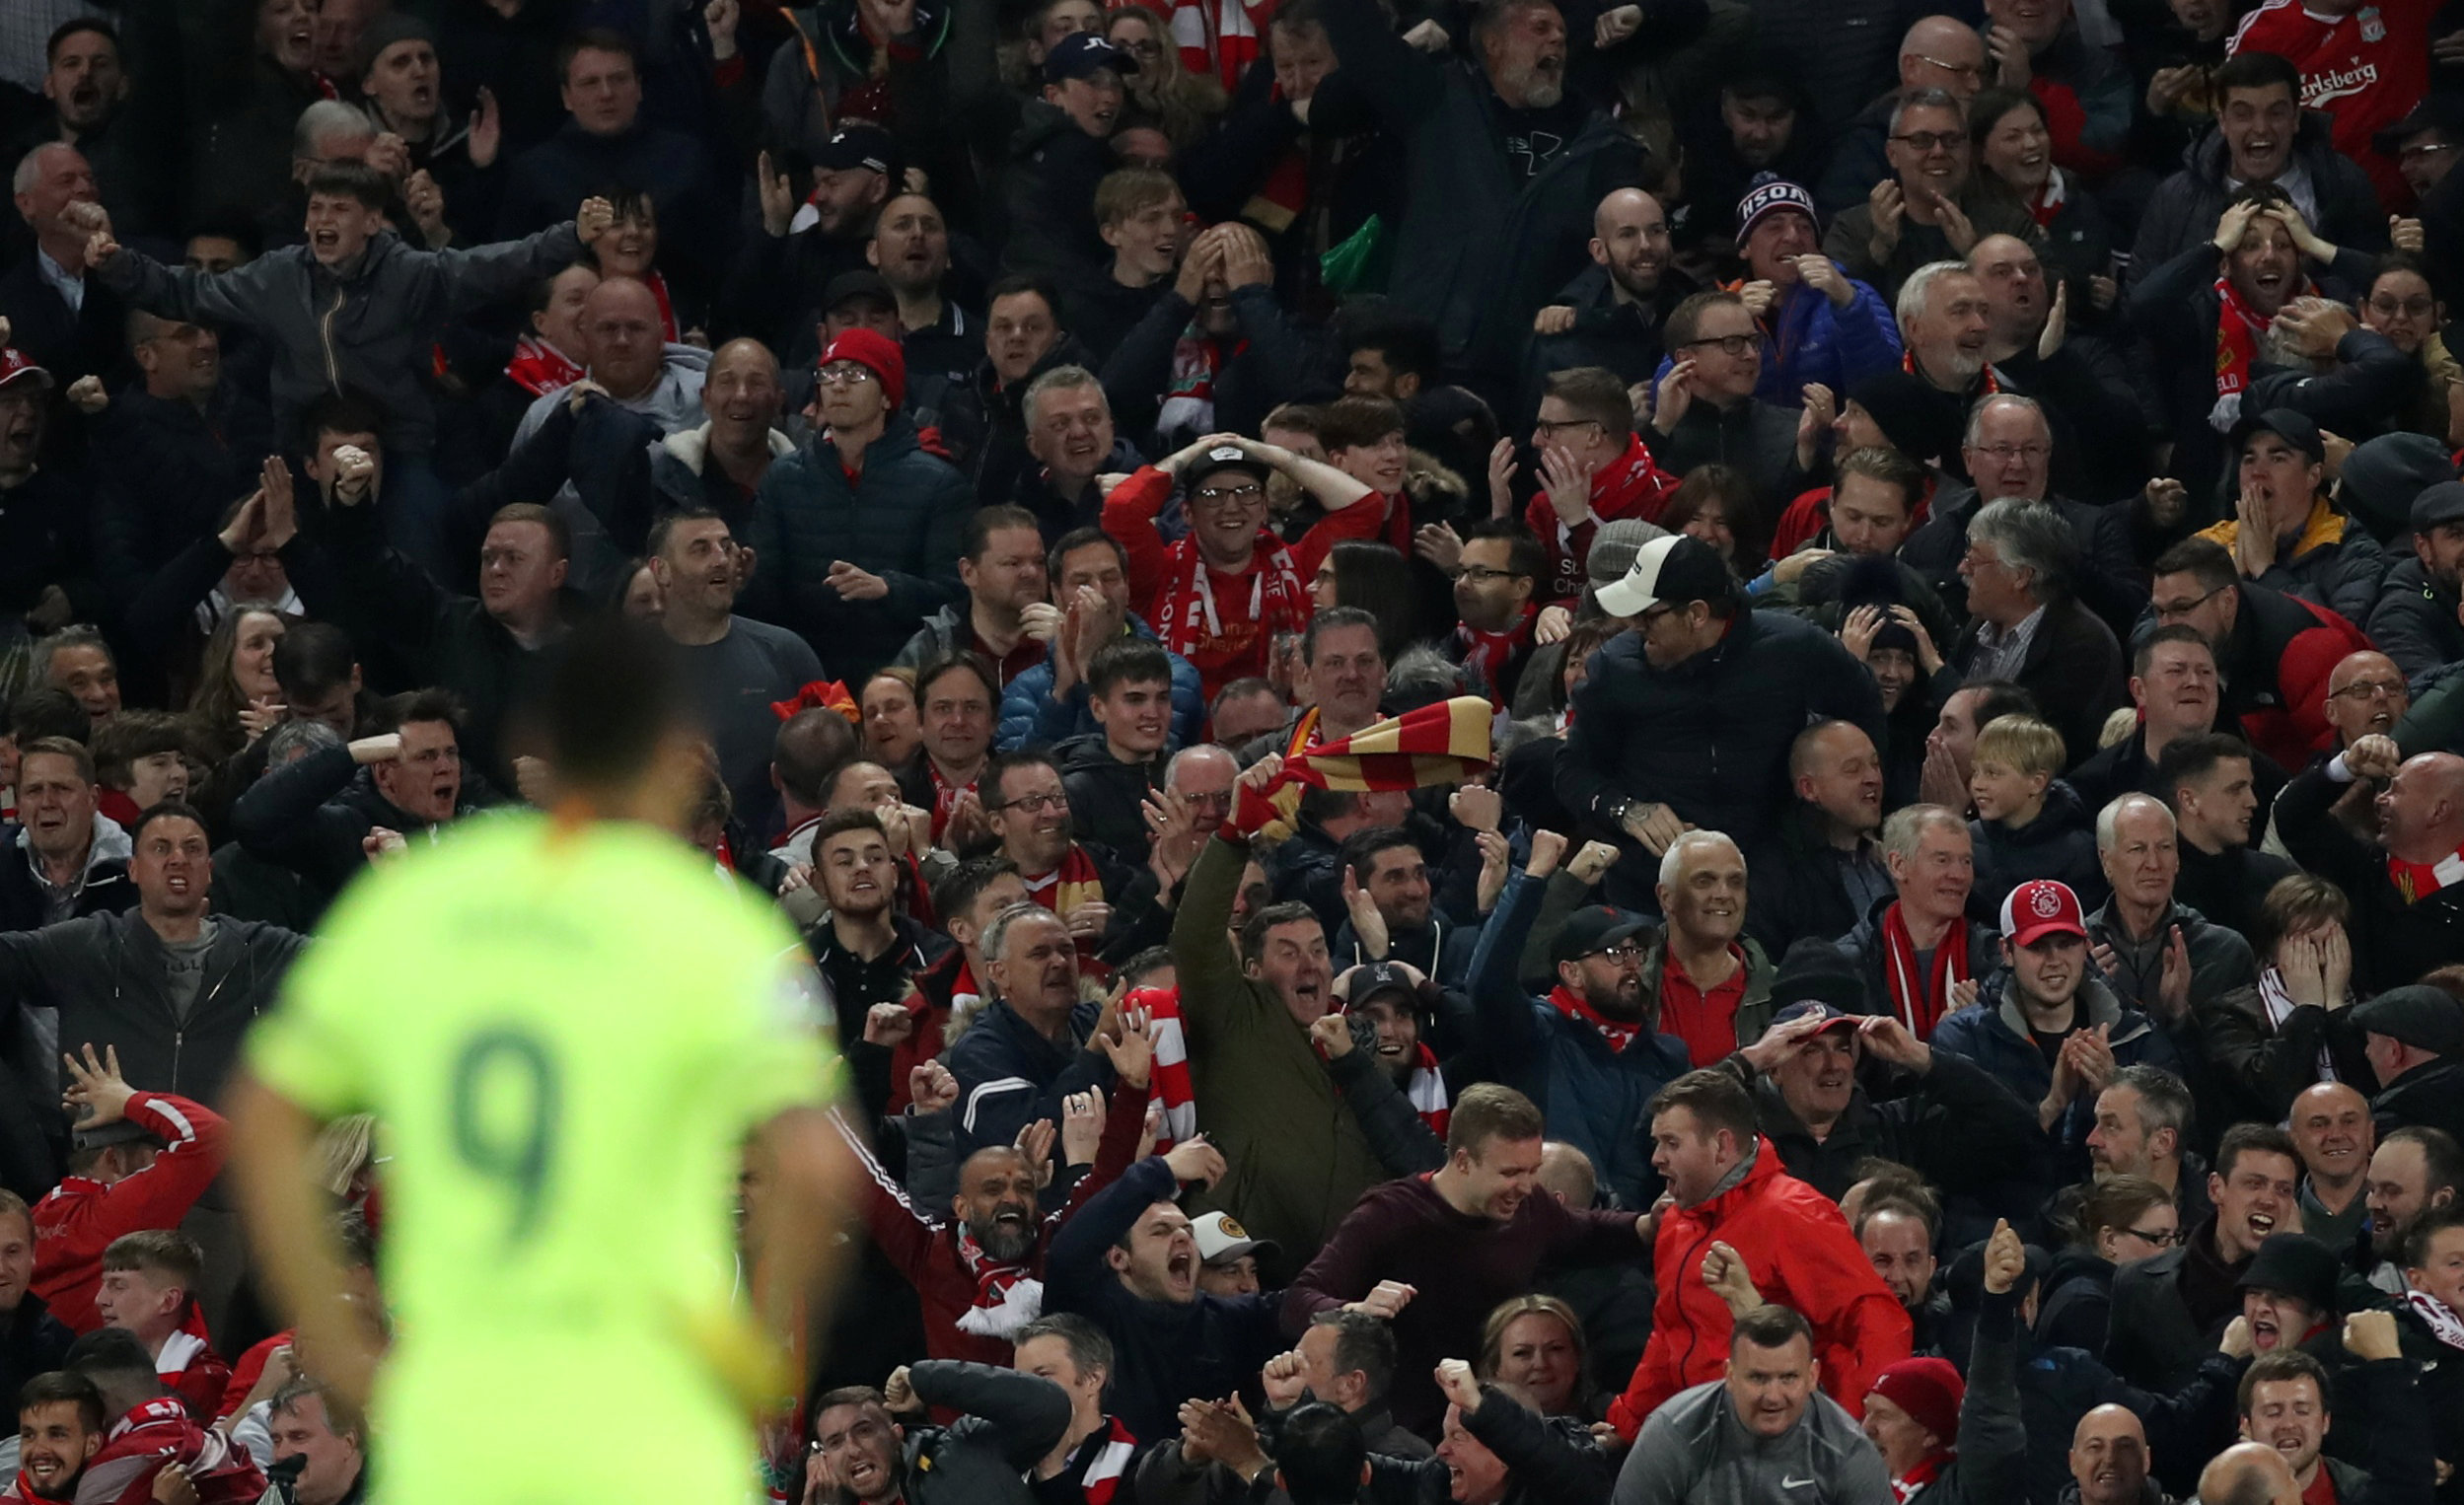 Suarez admits 'weeks of suffering' at home following Barcelona's defeat at Anfield